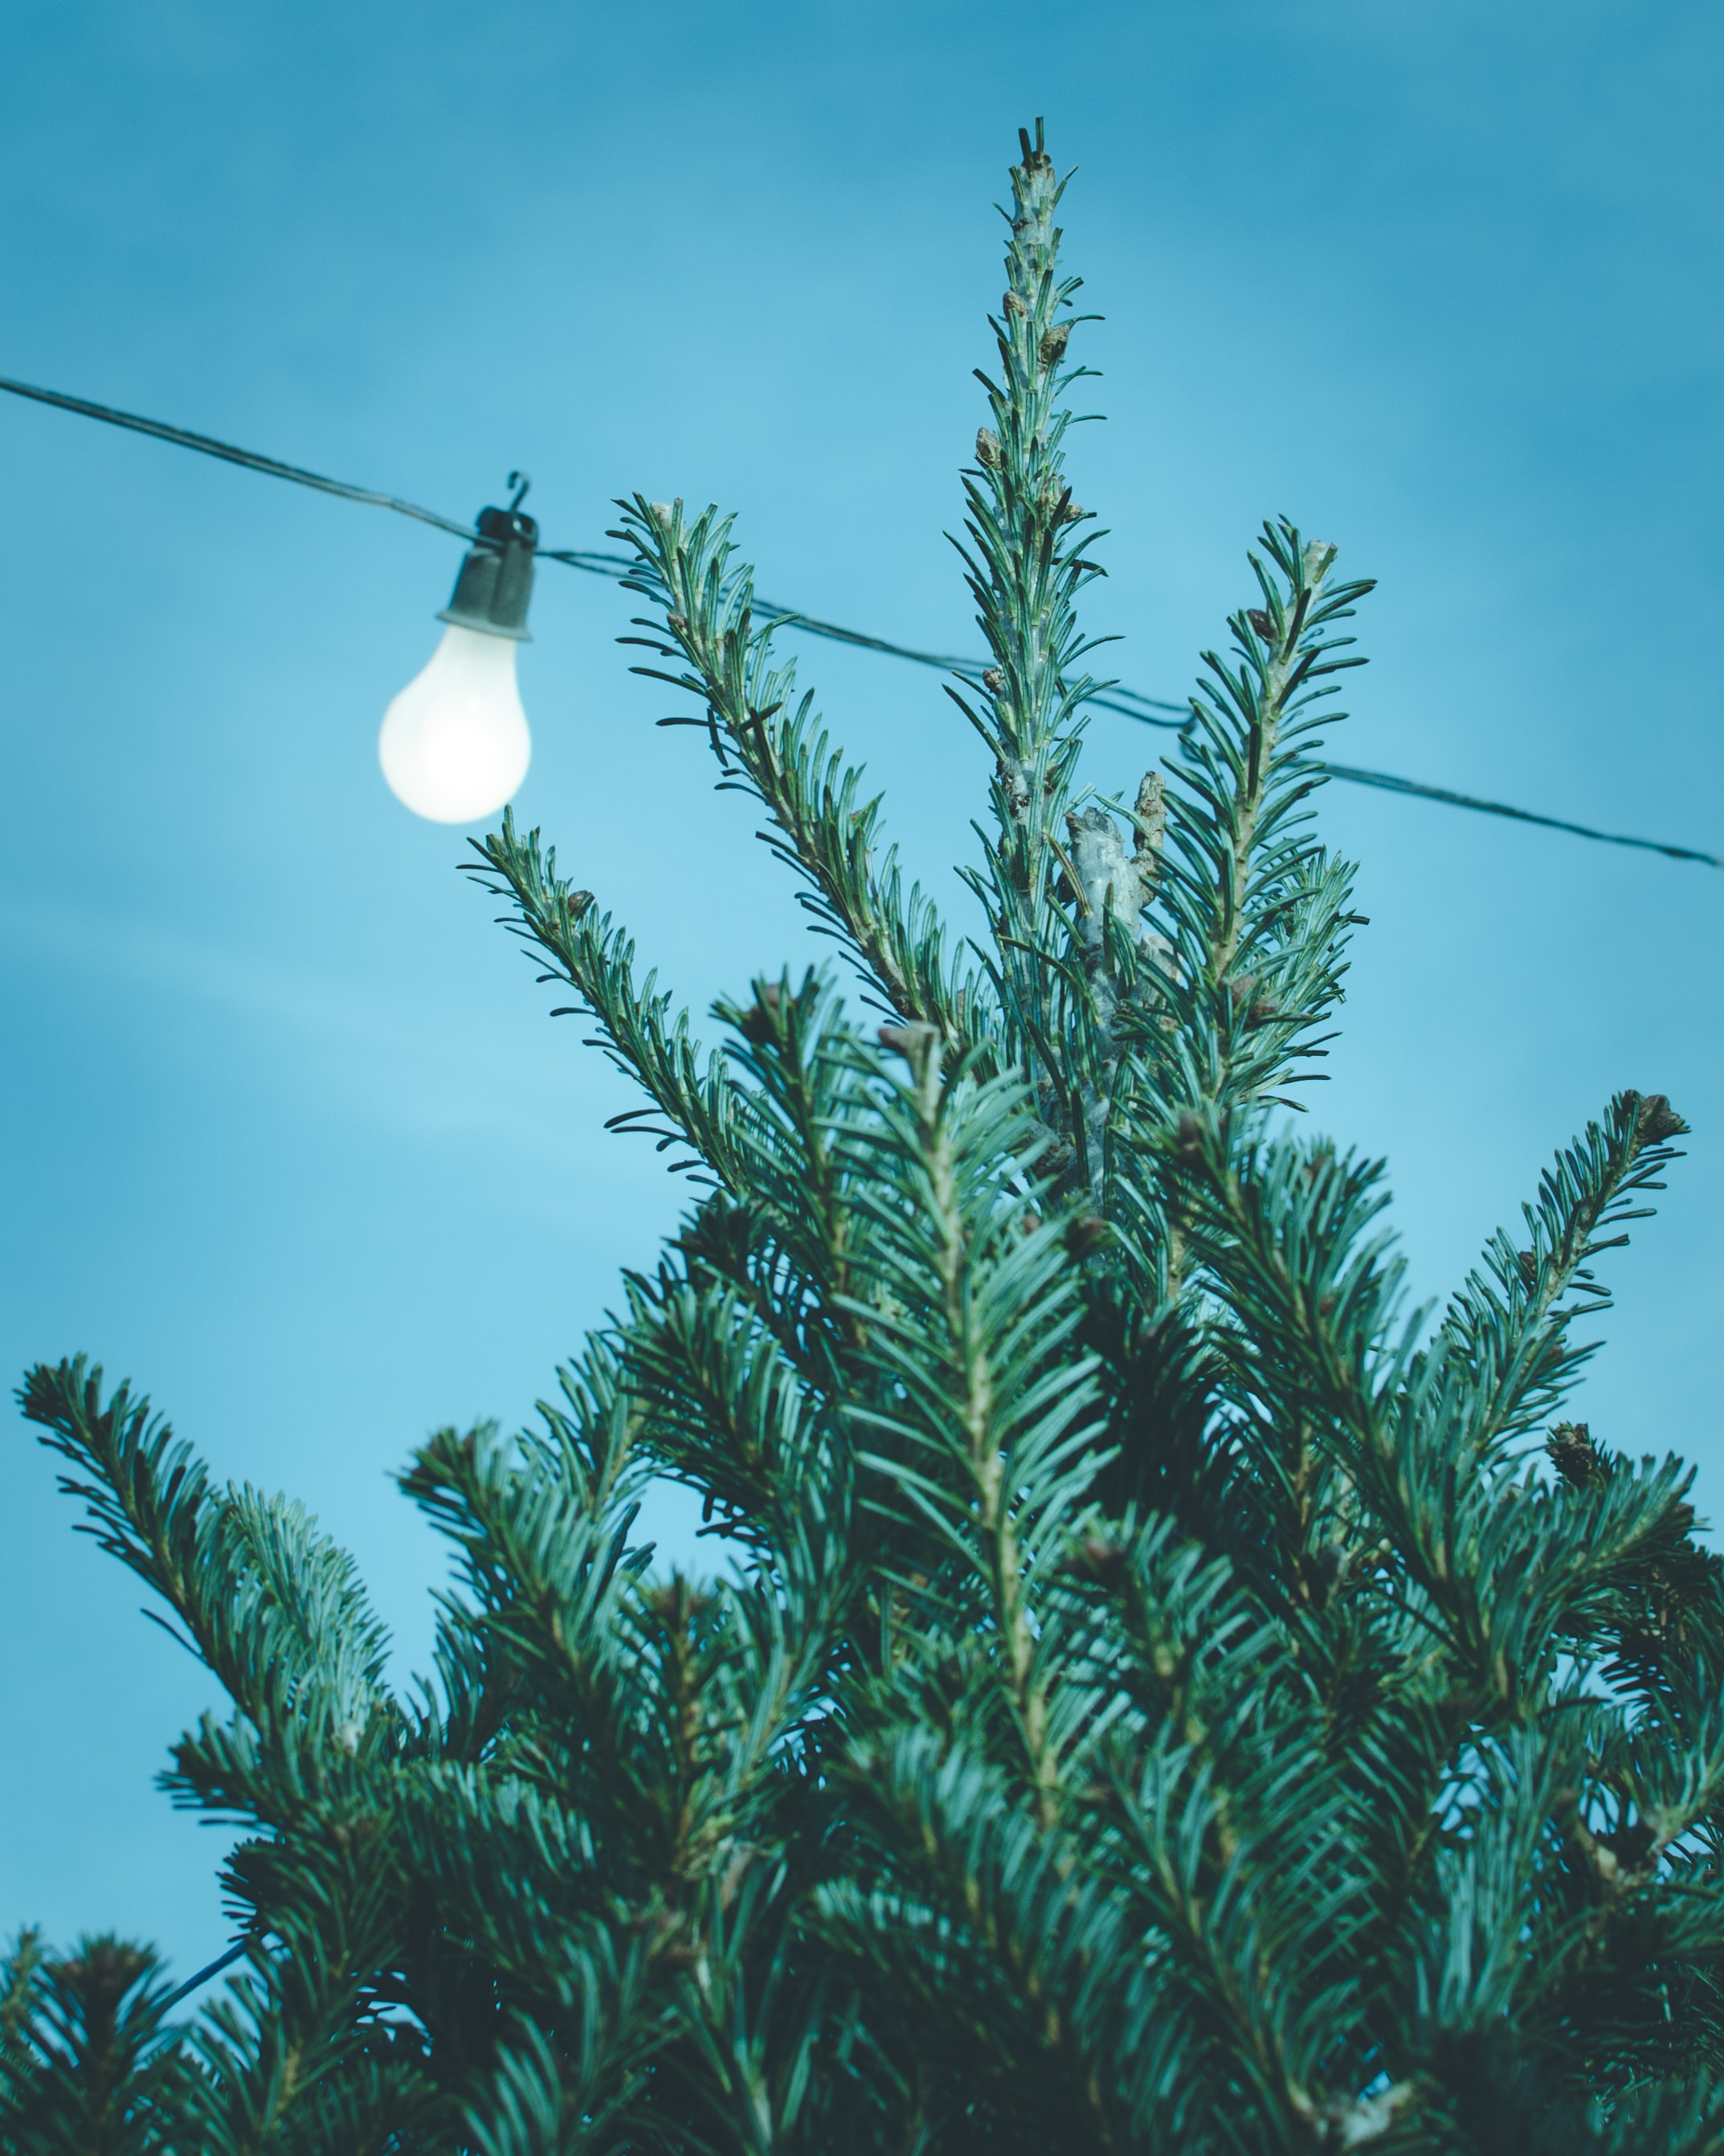 green leafed tree near light bulb